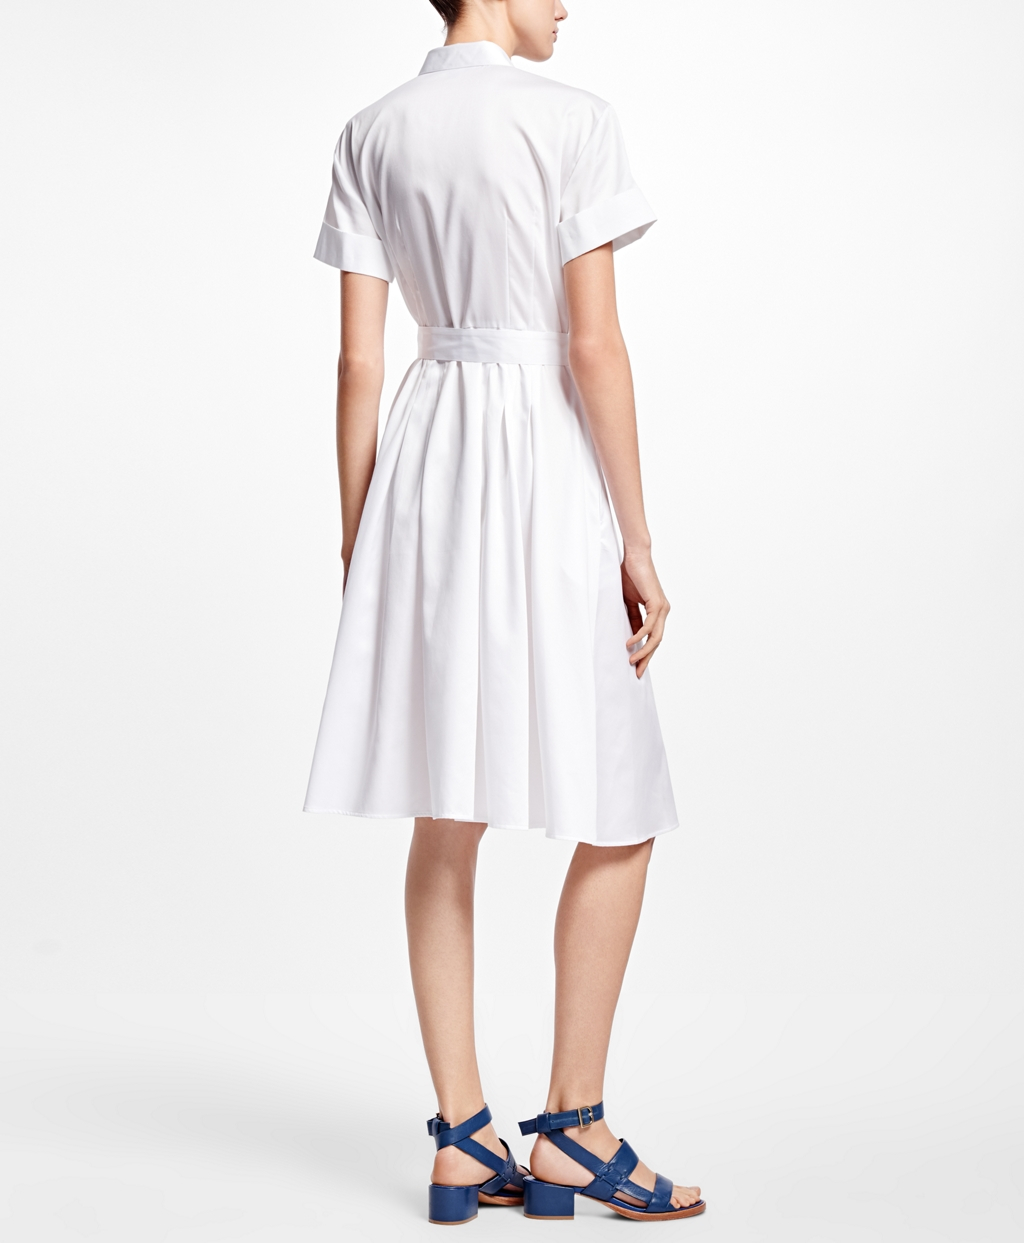 Brooks Brothers Cotton Sateen Shirt Dress in White - Lyst